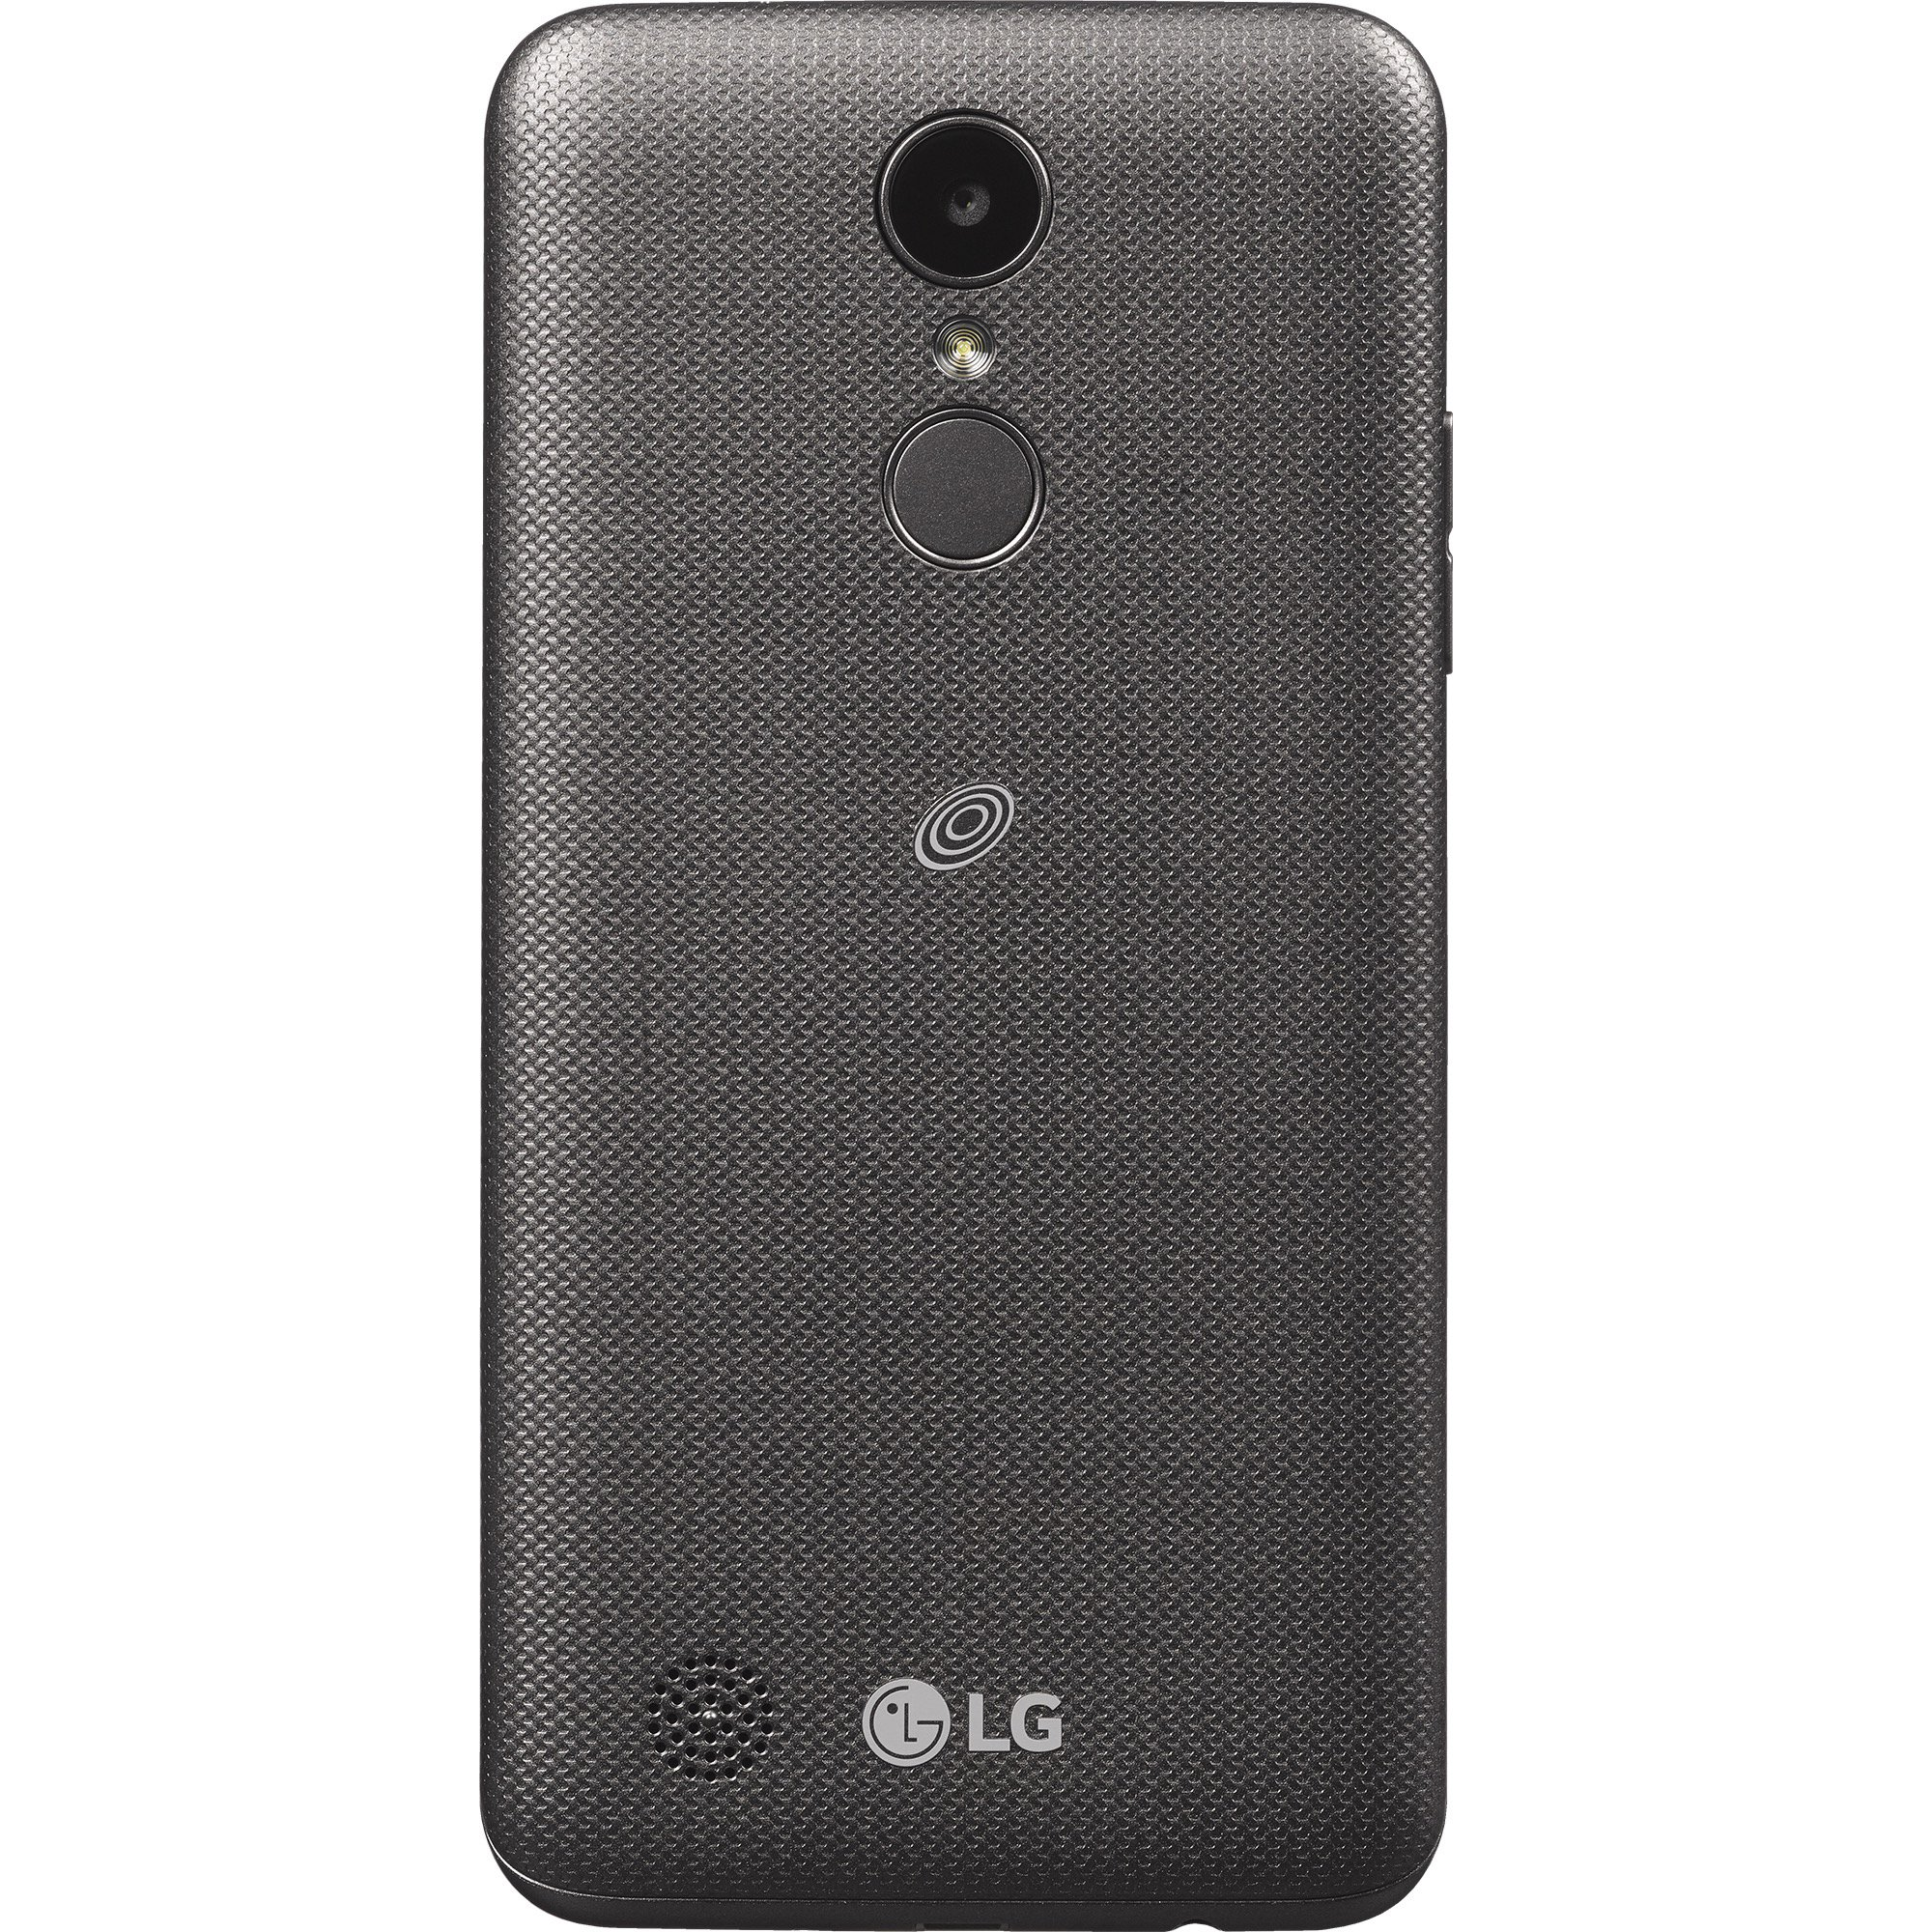 Simple Mobile LG Rebel 3 4G LTE Prepaid Smartphone by Simple Mobile (Image #3)